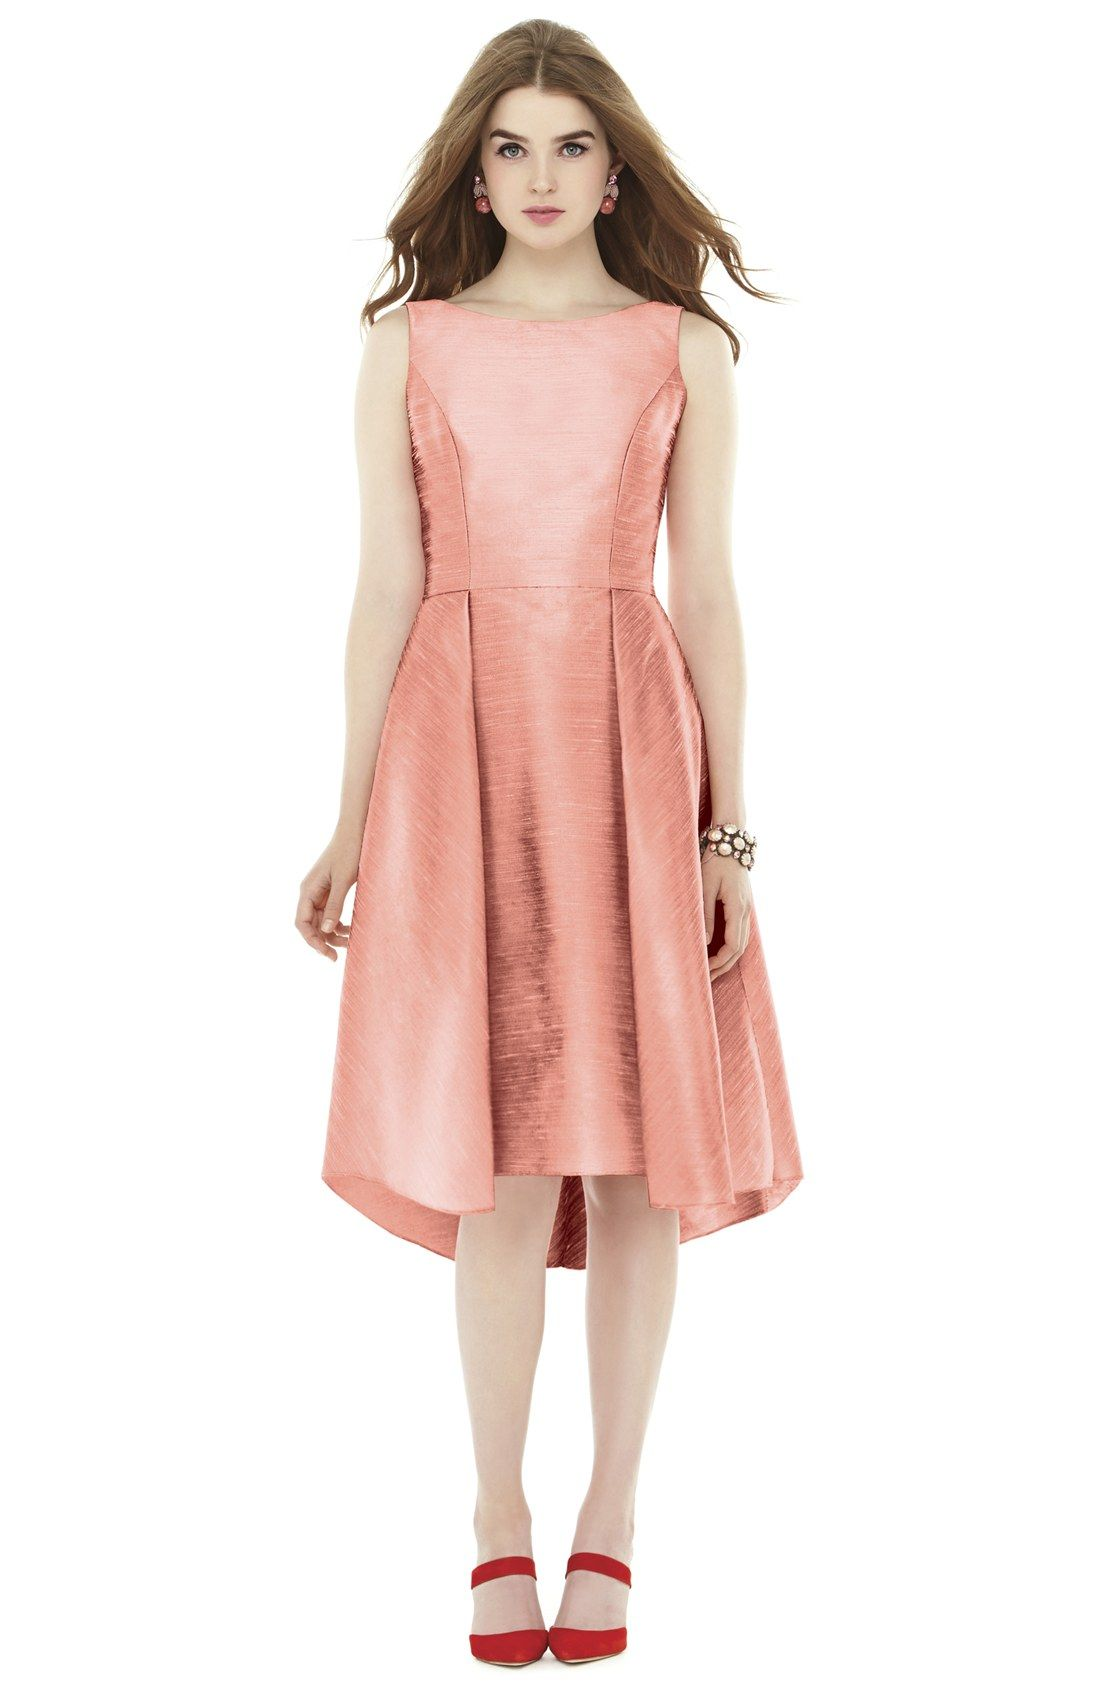 New alfred sung bow back dupioni fit flare midi dress fashion online new alfred sung bow back dupioni fit flare midi dress fashion online 198 bridesmaid ombrellifo Choice Image